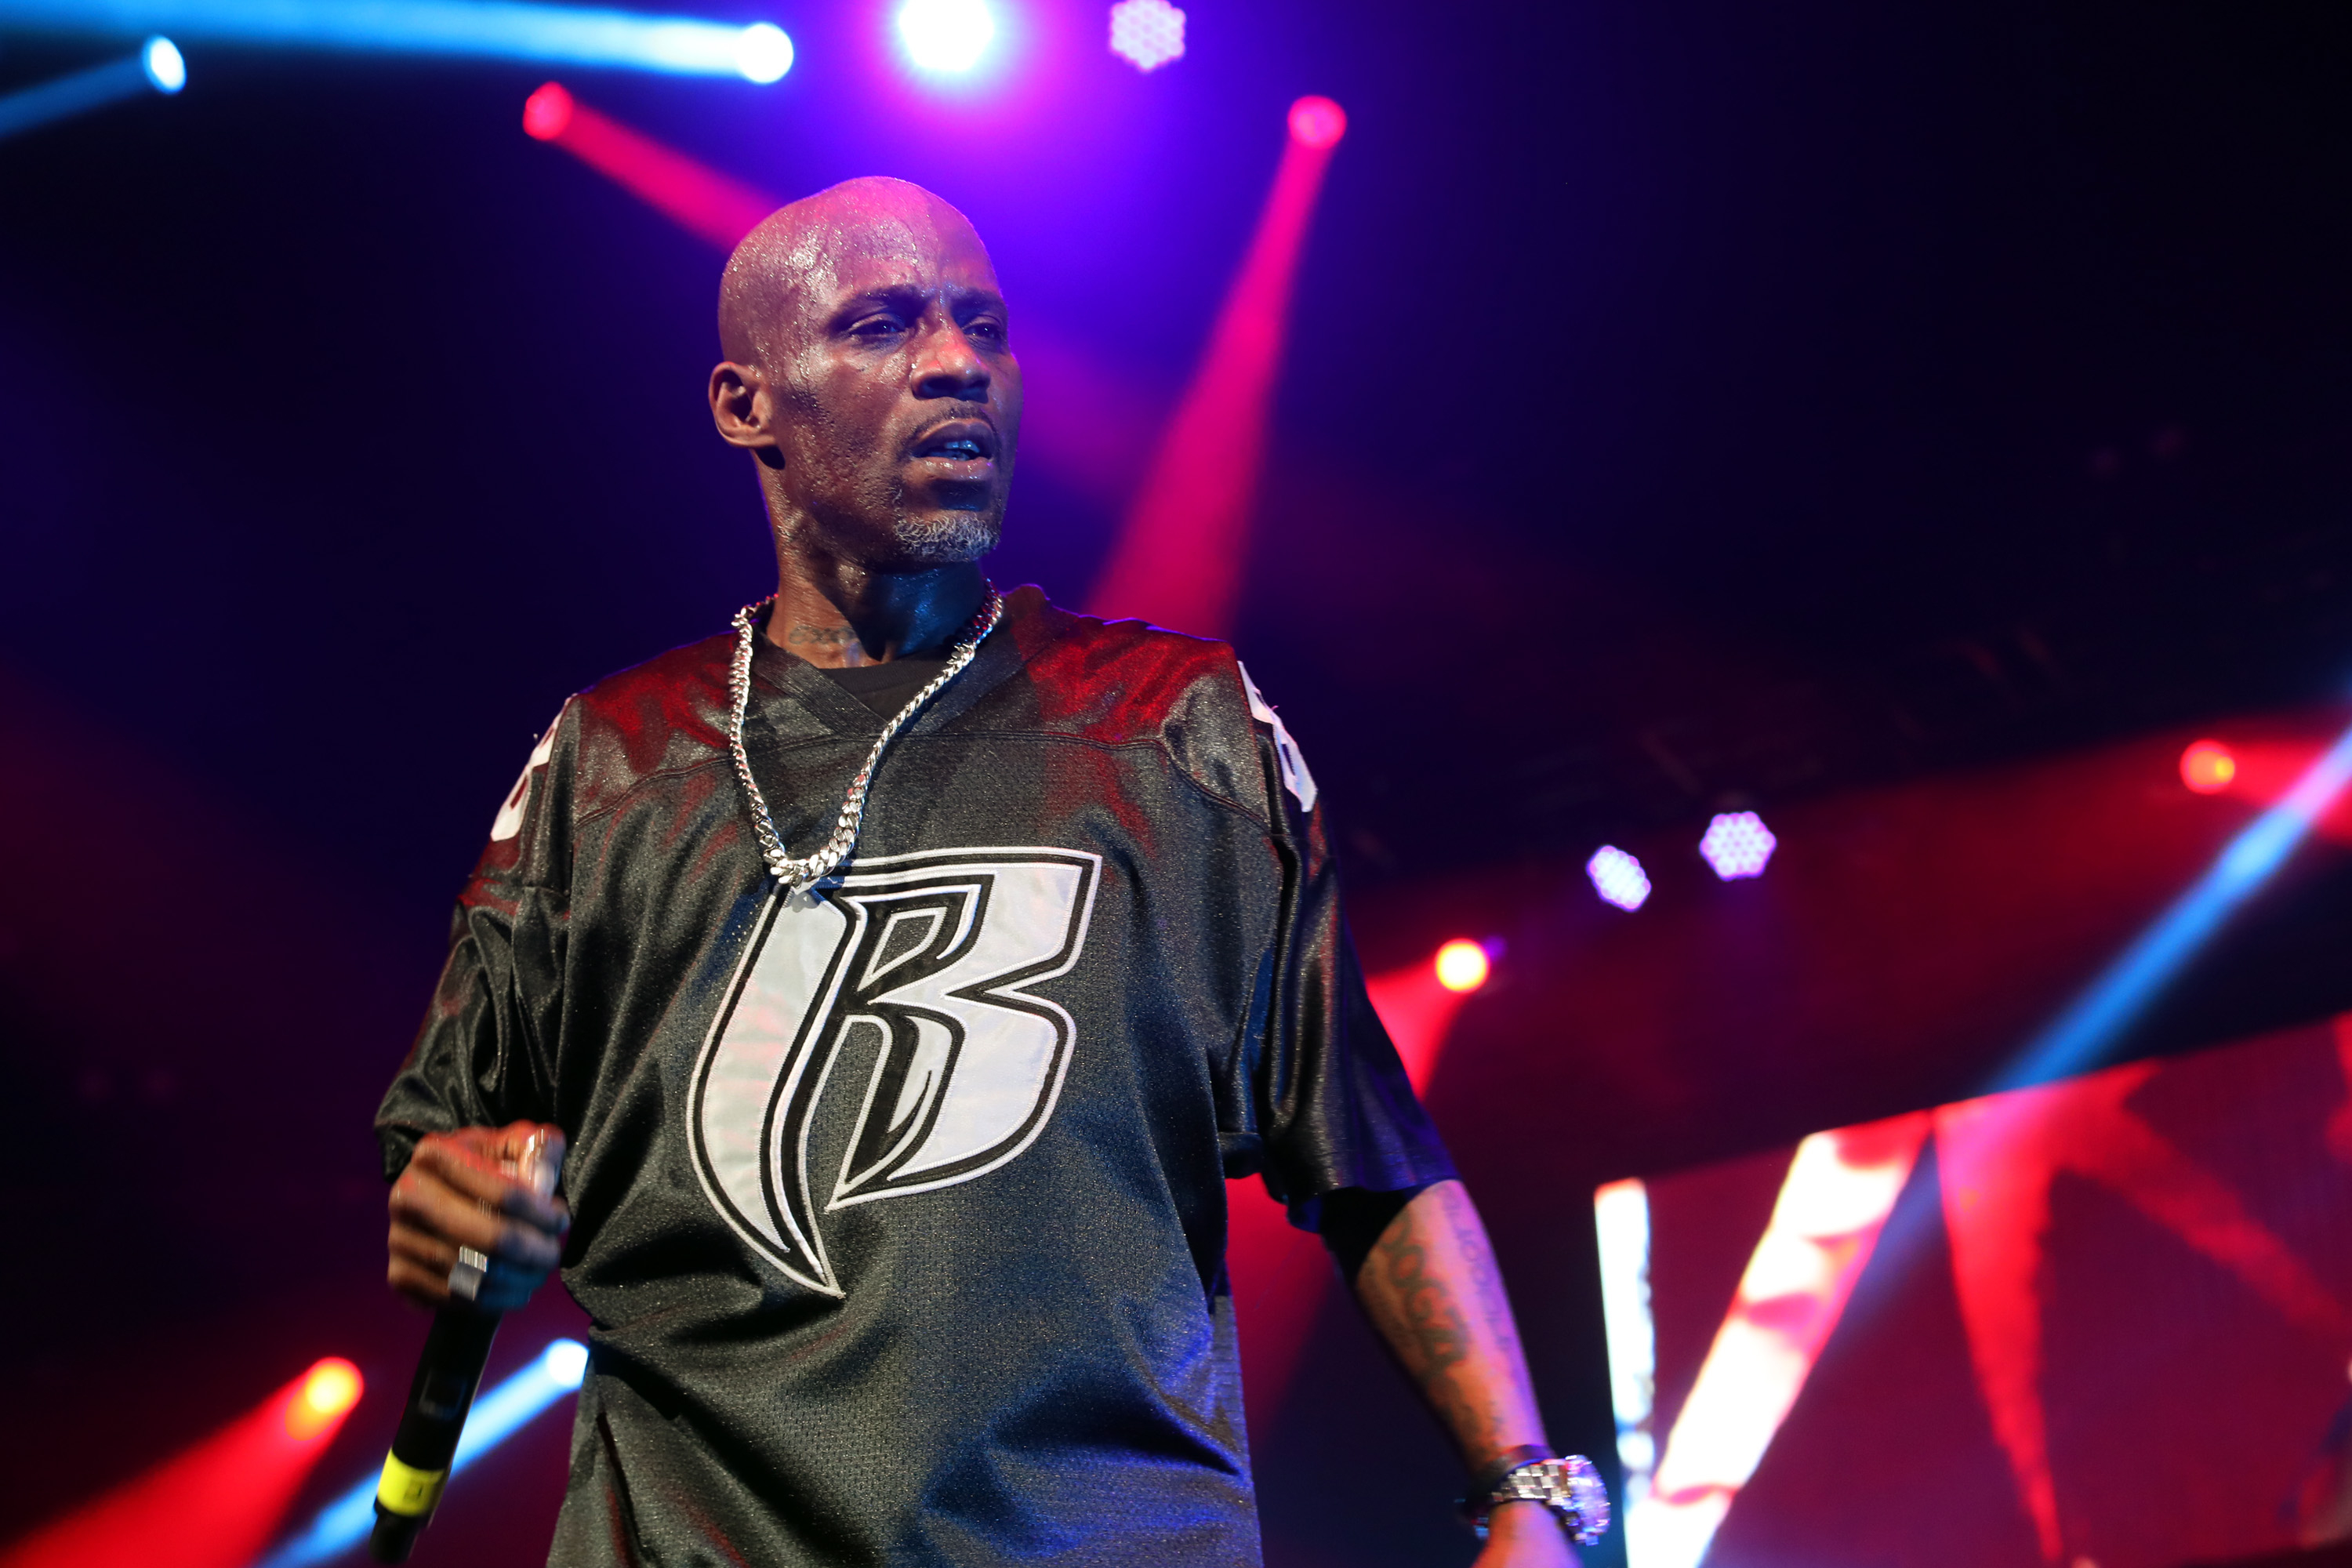 DMX Checks Into Rehab After Canceling Tour Dates – Rolling Stone